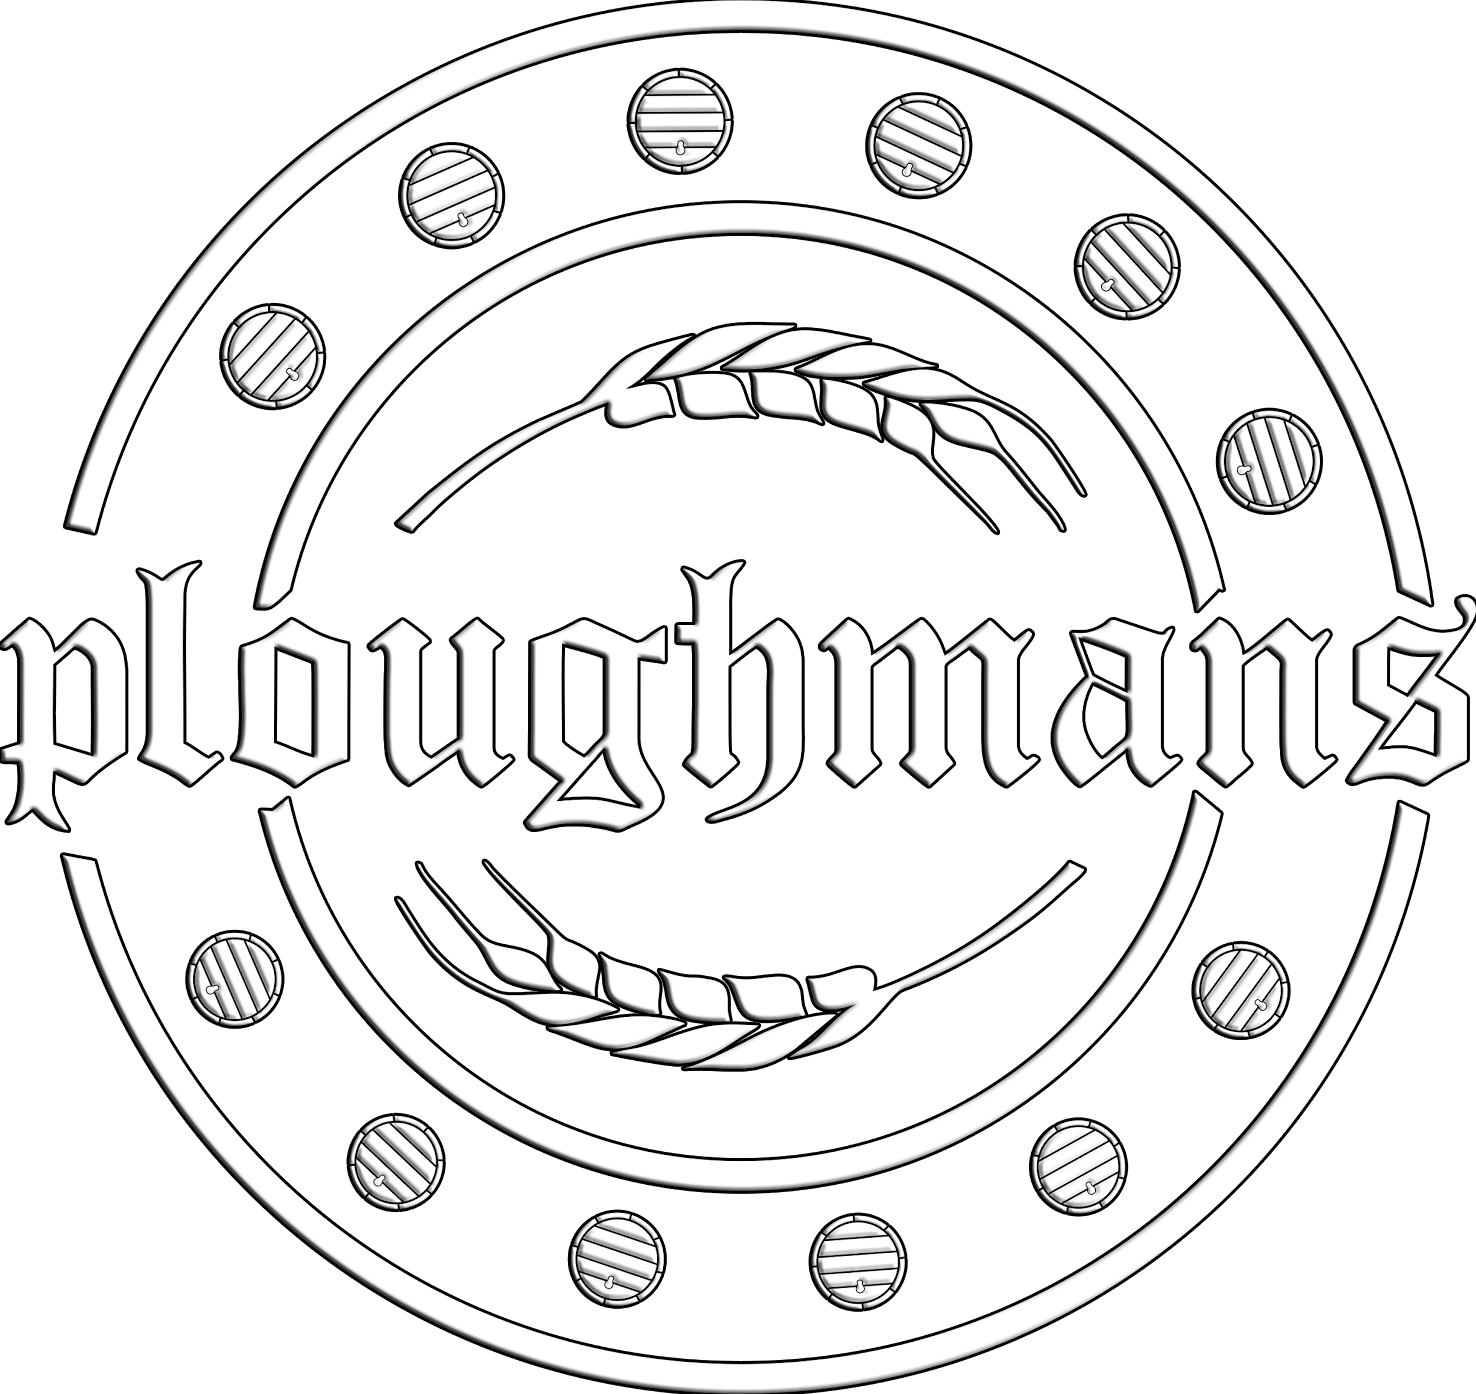 Ploughmans Restaurant & Bar